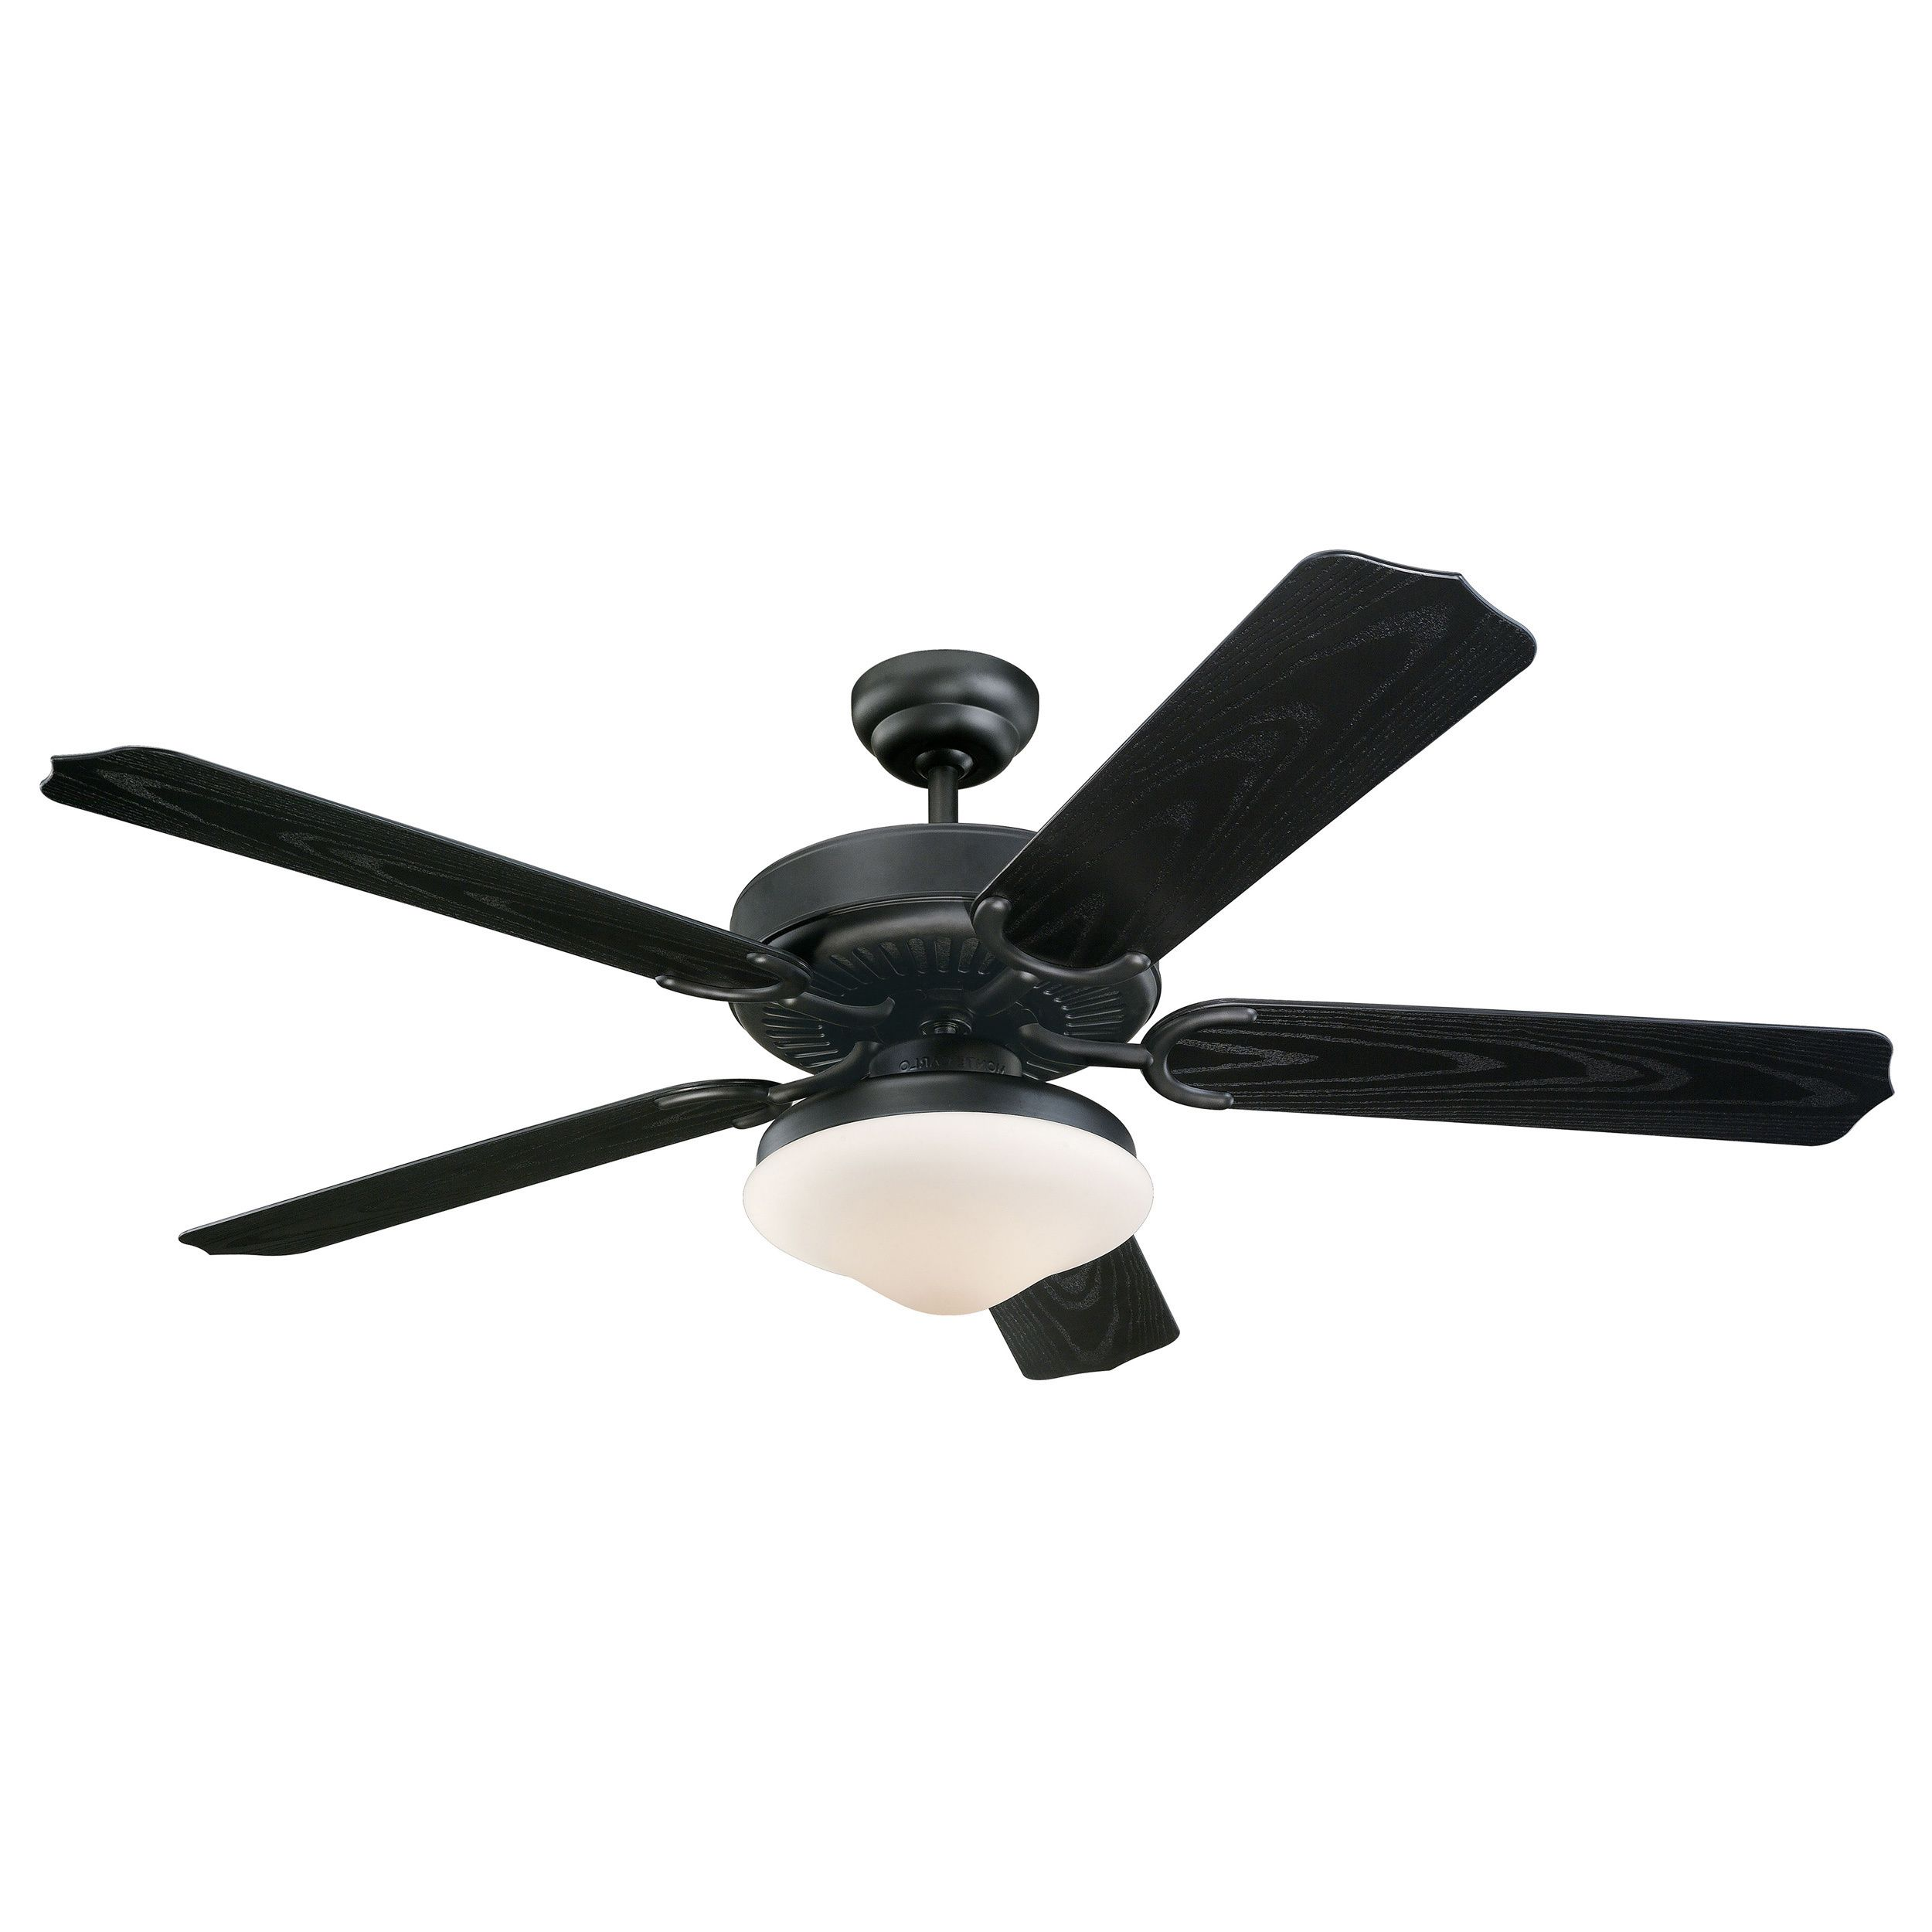 Enrich your outdoor space with this Weatherford Deluxe ceiling fan